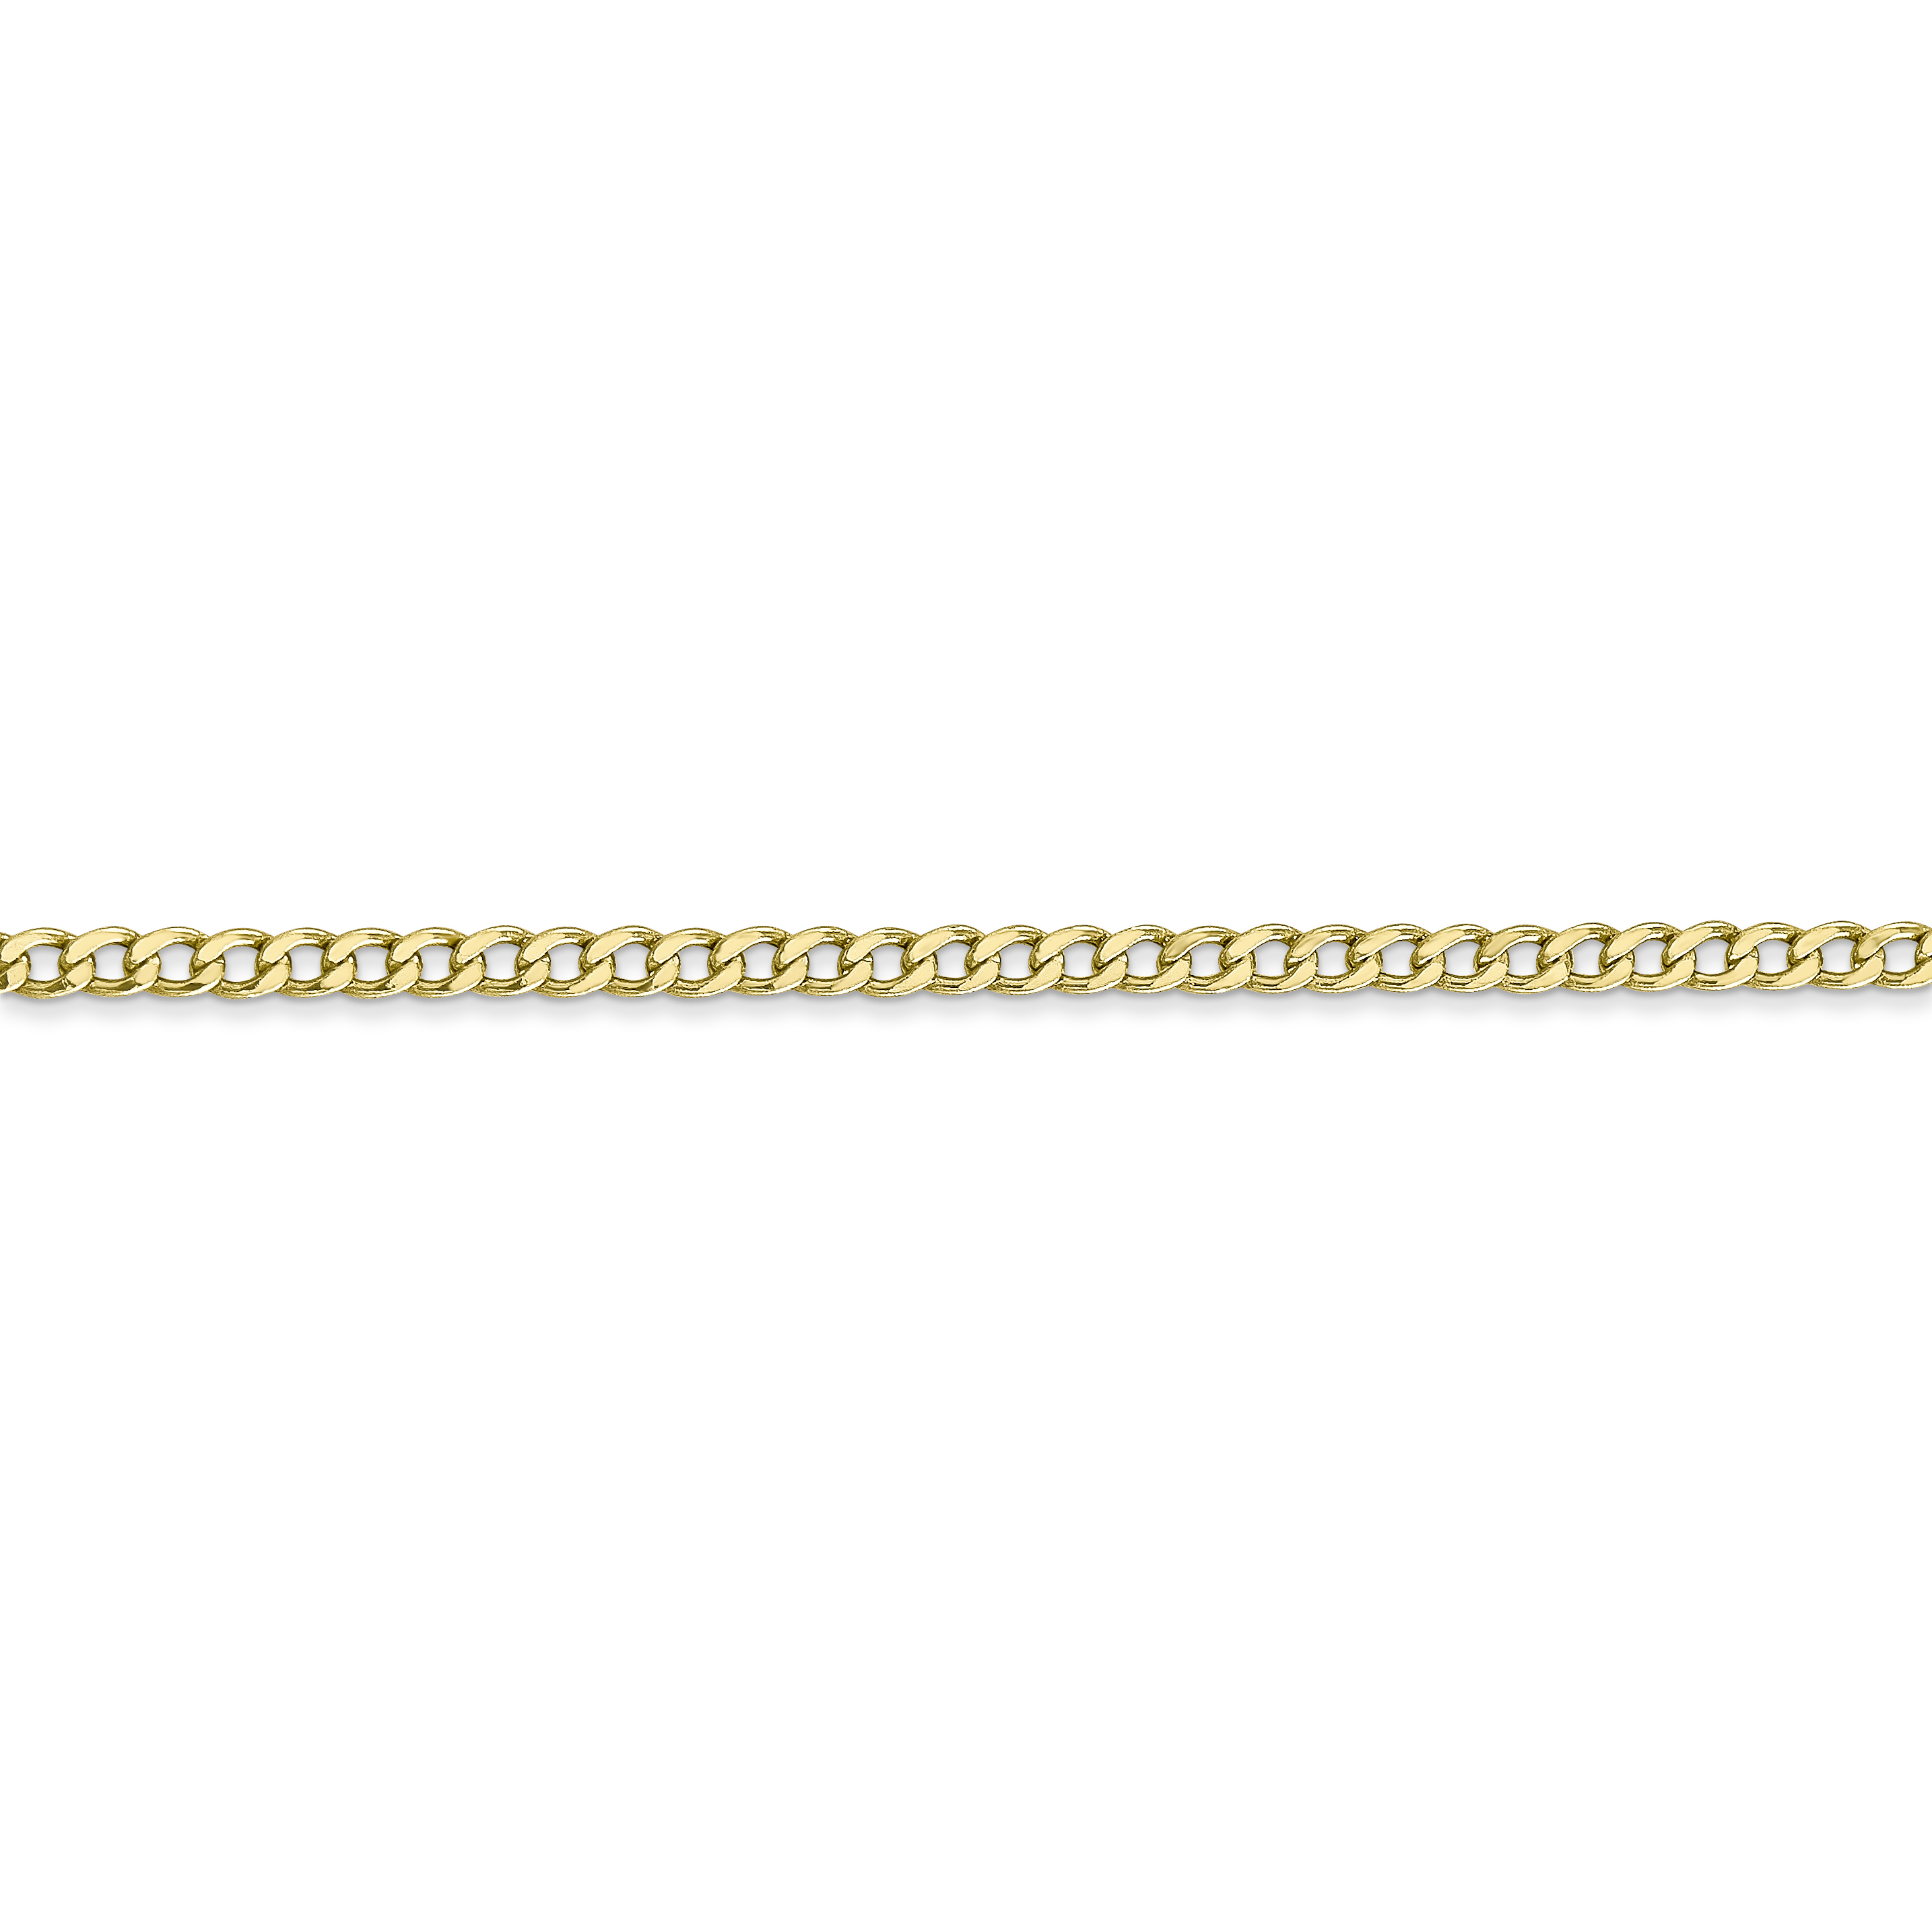 10K Yellow Gold 2.5mm Semi-Solid Curb Link Chain 24 IN - image 4 of 5